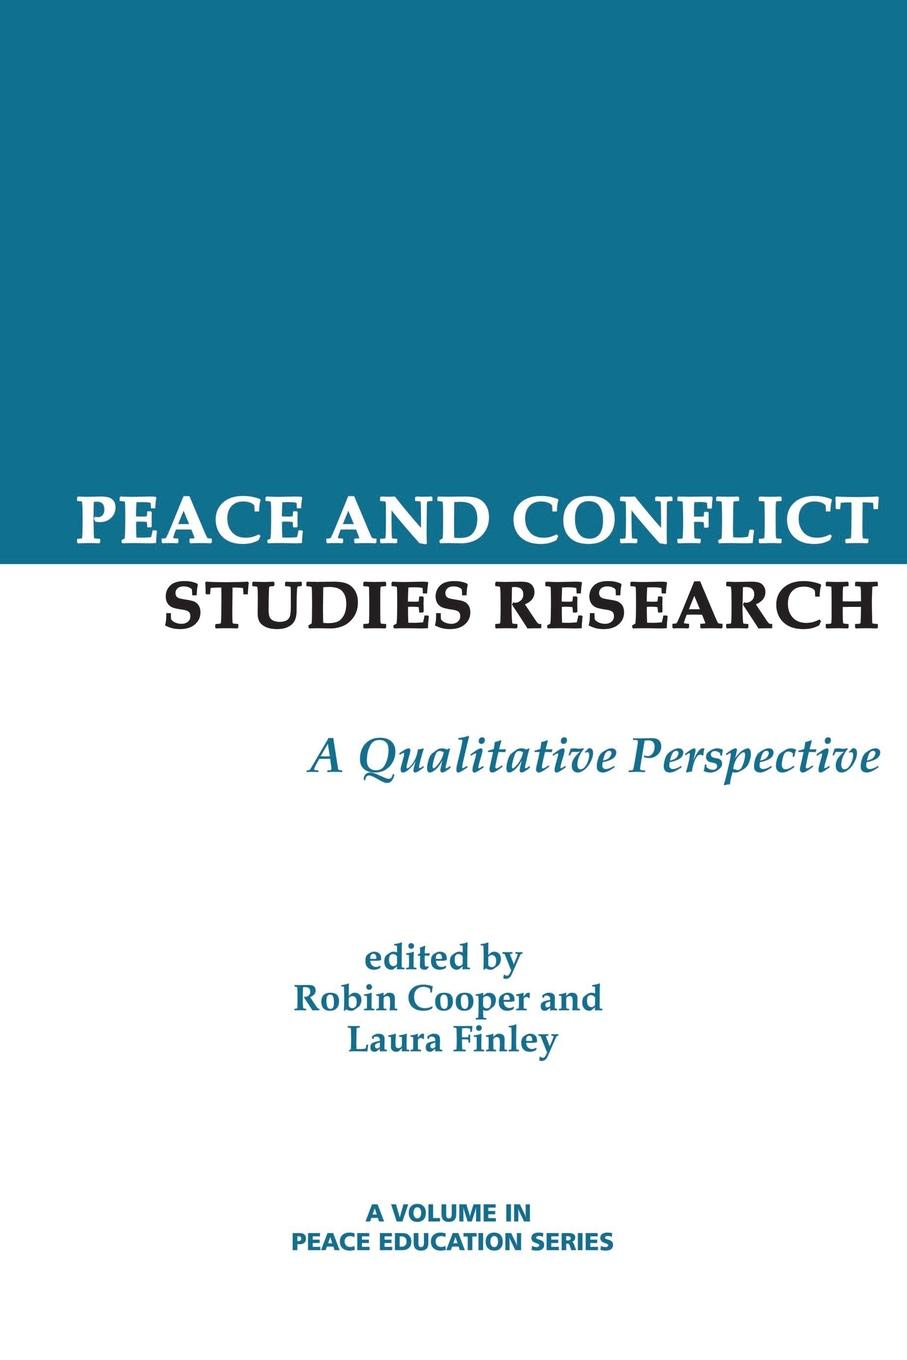 Peace and Conflict Studies Research. A Qualitative Perspective methods in paleoethnobotany studies of cereal cultivation